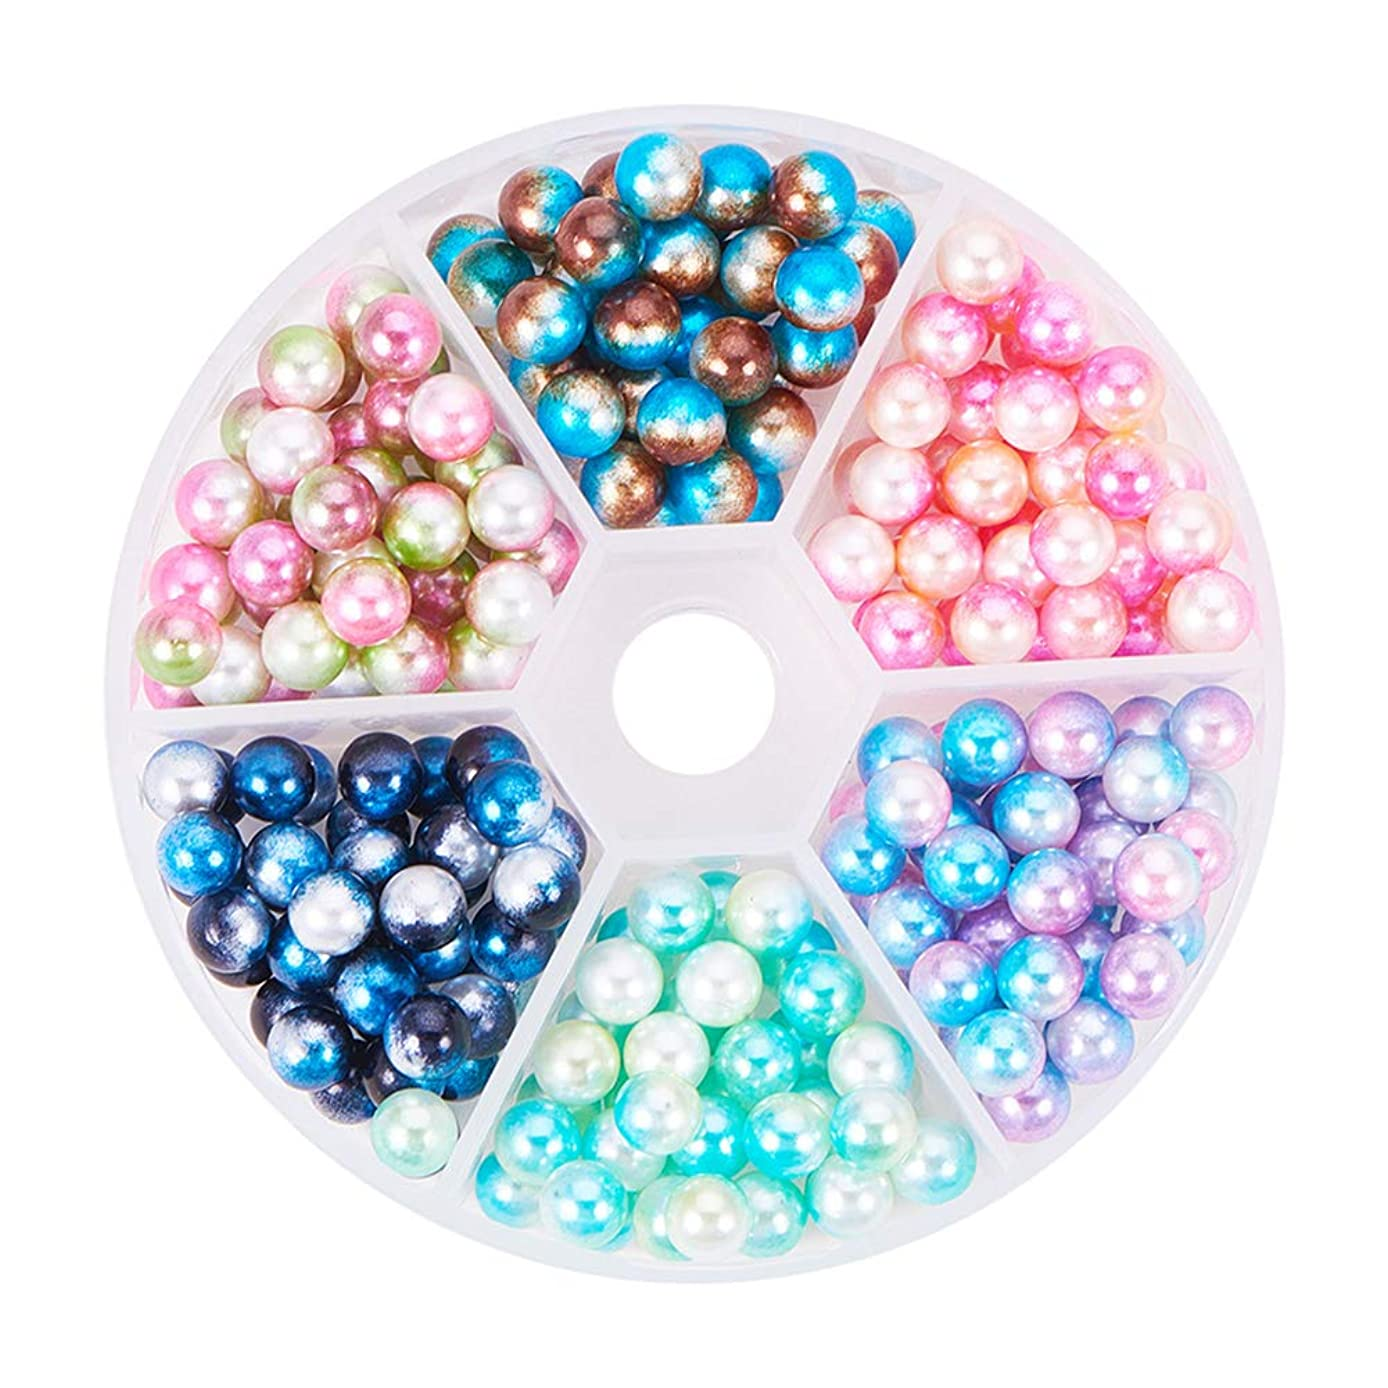 PH PandaHall About 250 Pieces 6 Color 6mm No Holes/Undrilled Imitated Pearl Beads for Vase Fillers, Wedding, Party, Home Decoration